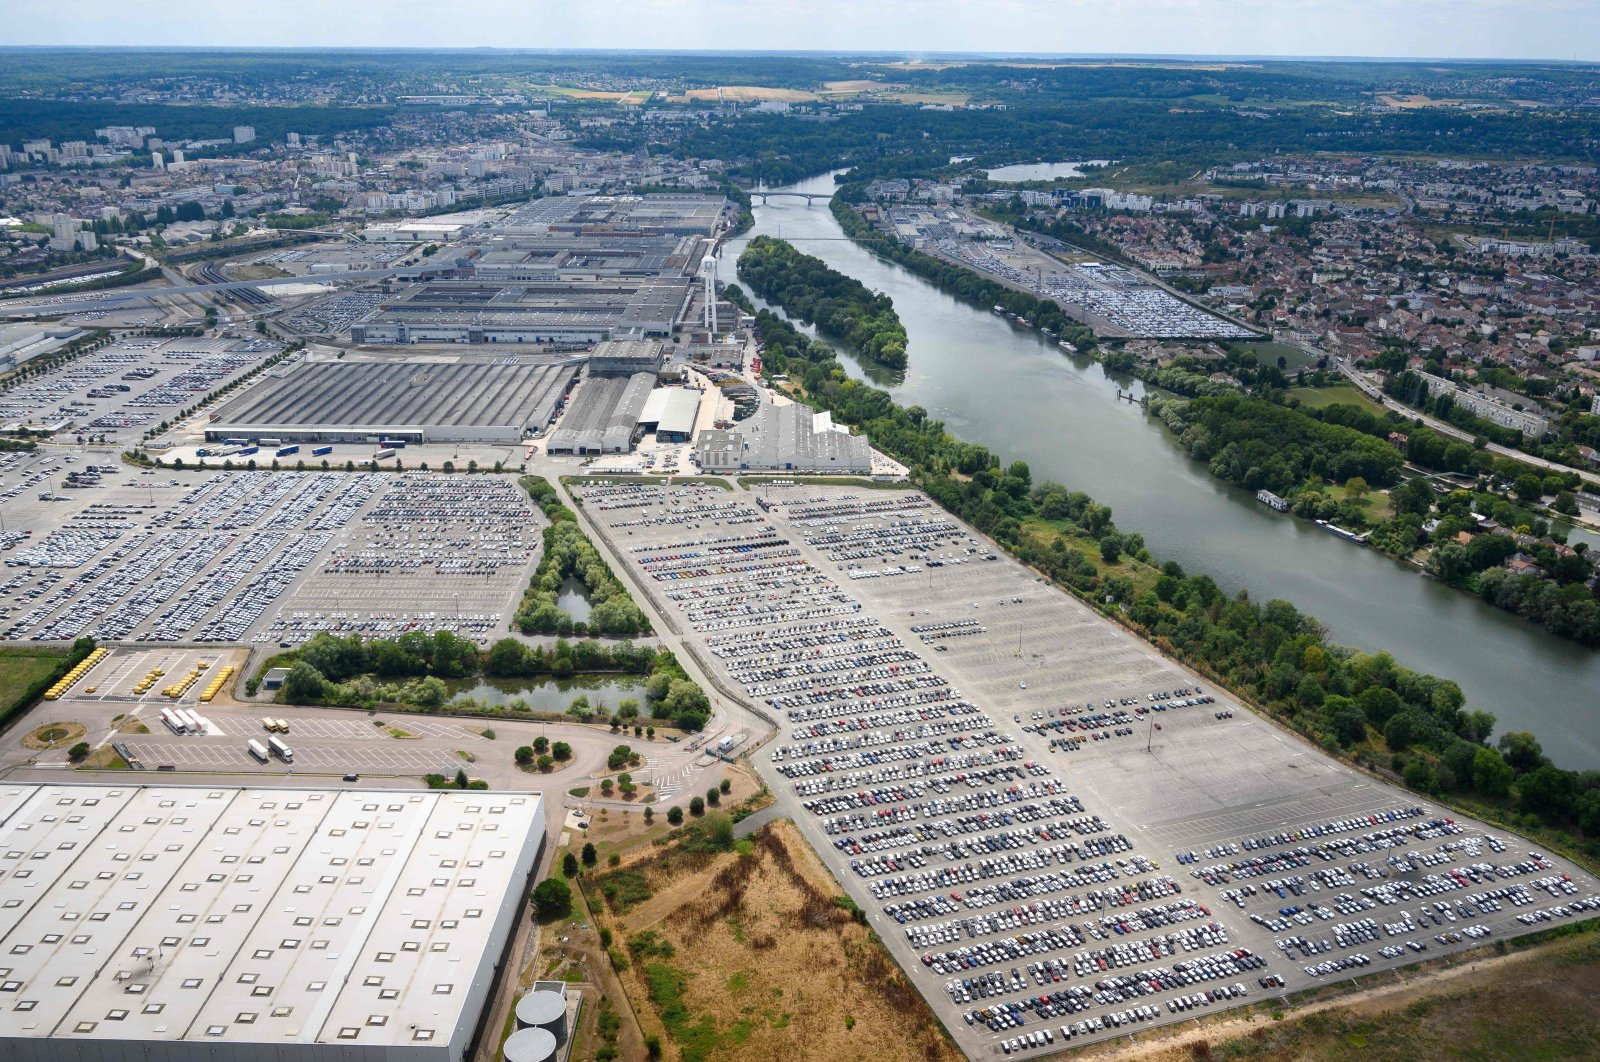 An aerial view taken of vehicles at the Groupe PSA facility in Carrieres-sous-Poissy, on the outskirts of Paris, France, Aug. 8, 2019. (AFP Photo)